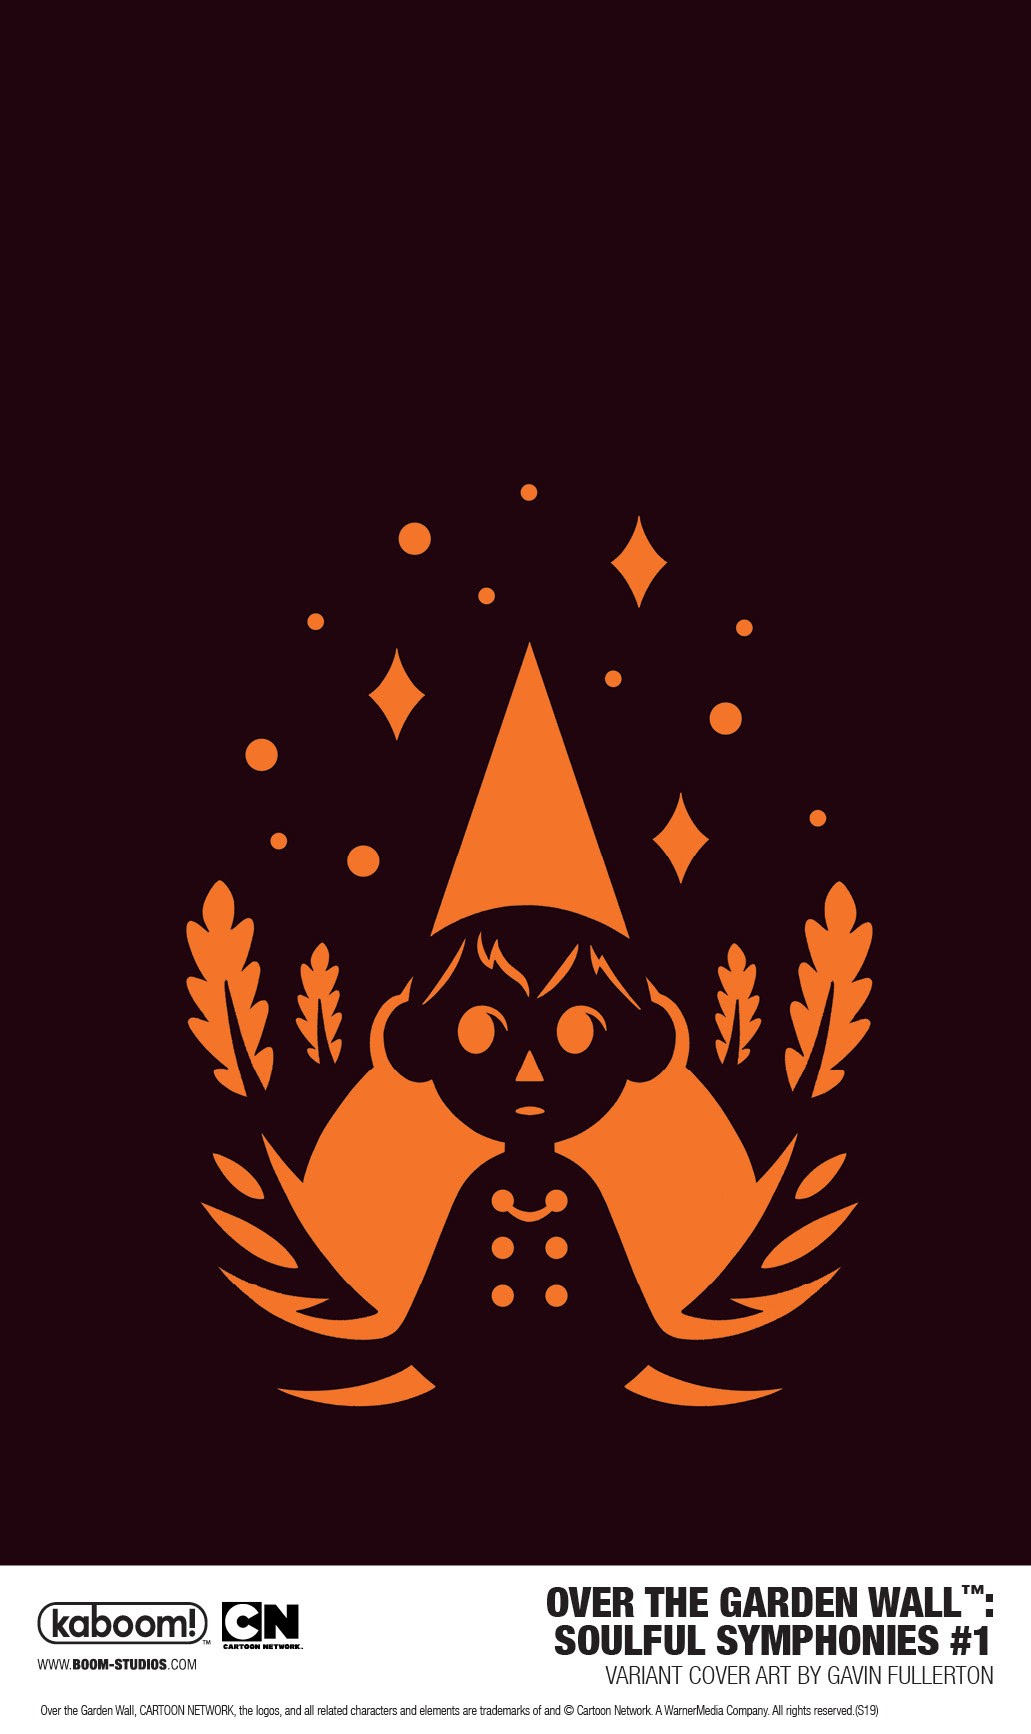 Over the Garden Wall: Soulful Symphonies #1 variant cover A